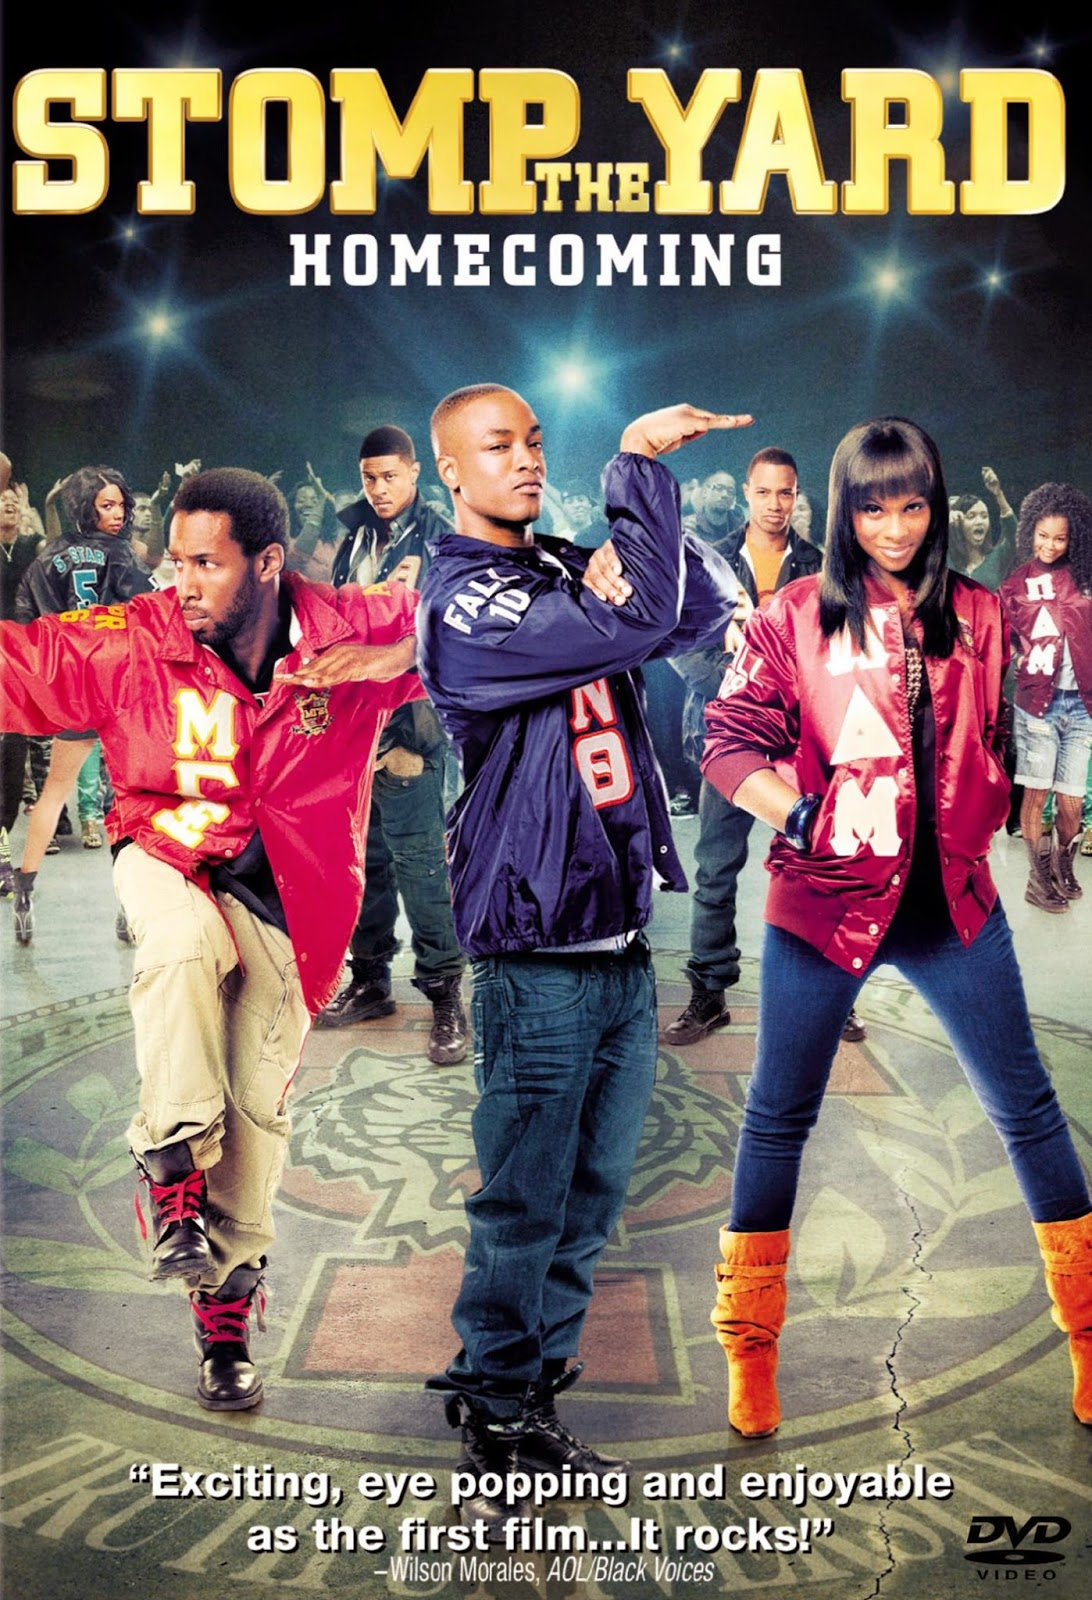 Stomp the Yard 2 Homecoming 2010 ταινιες online seires xrysoi greek subs